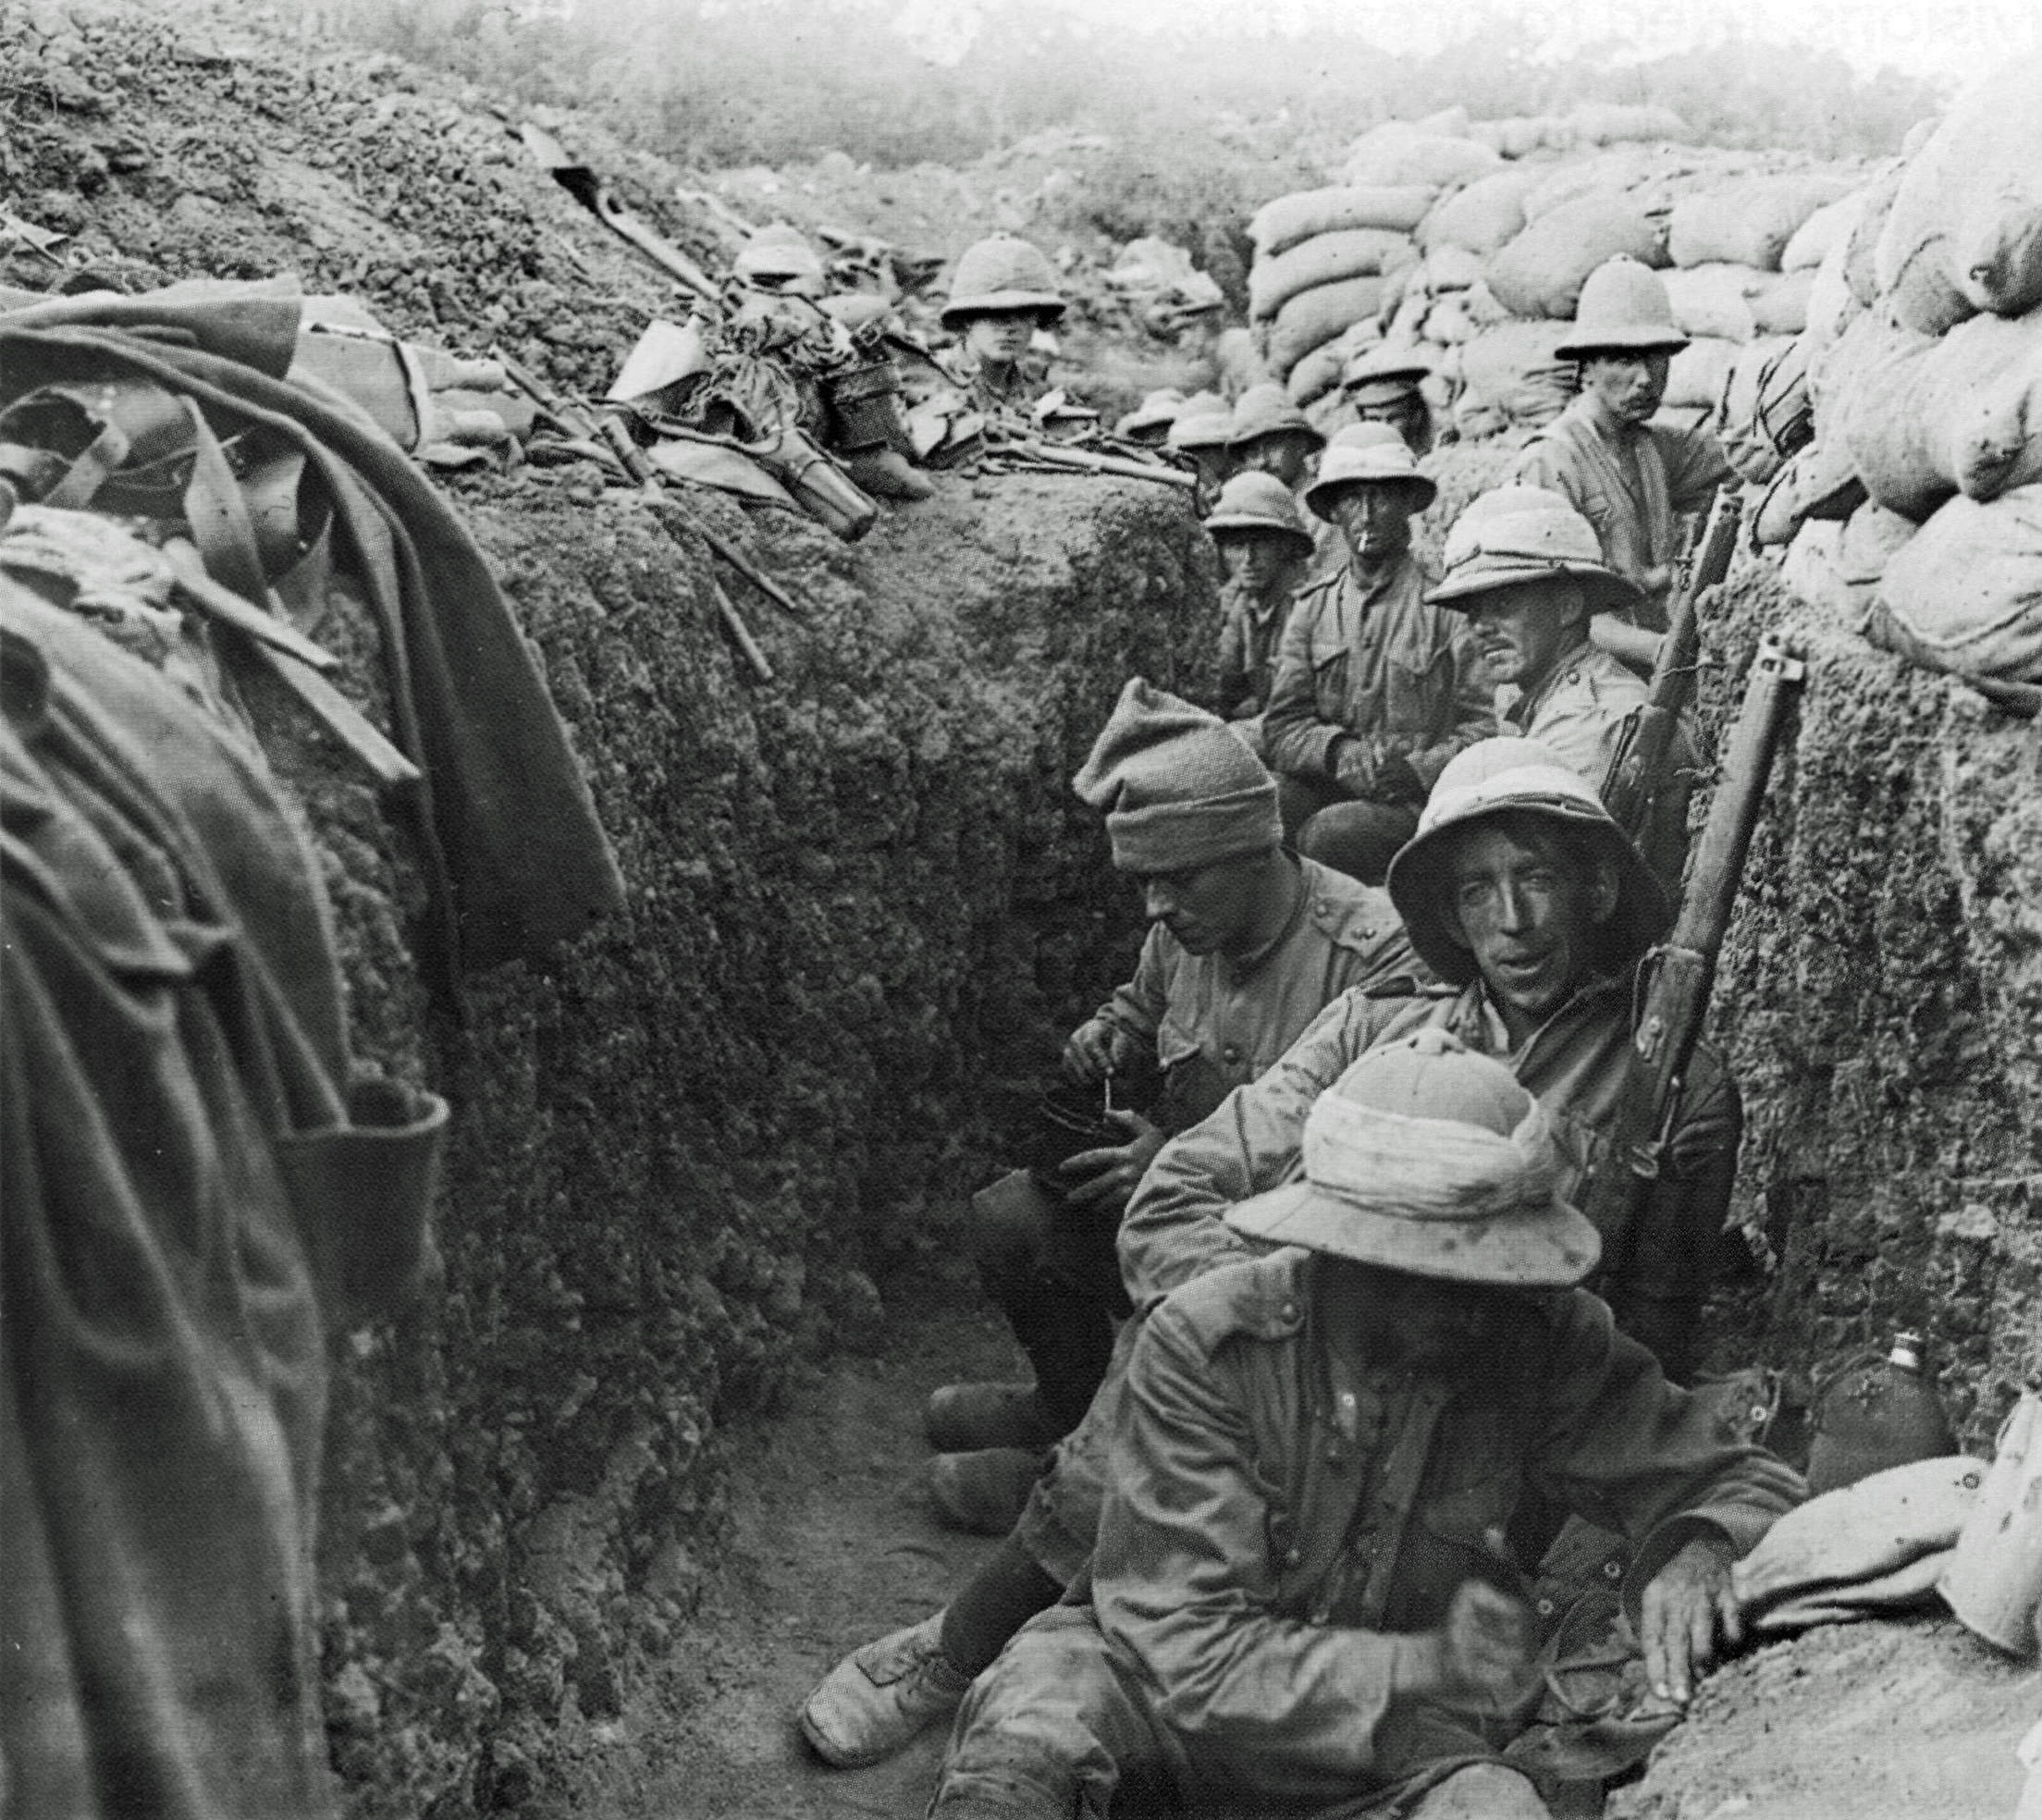 File:Soldiers in trench.jpg - Wikimedia Commons